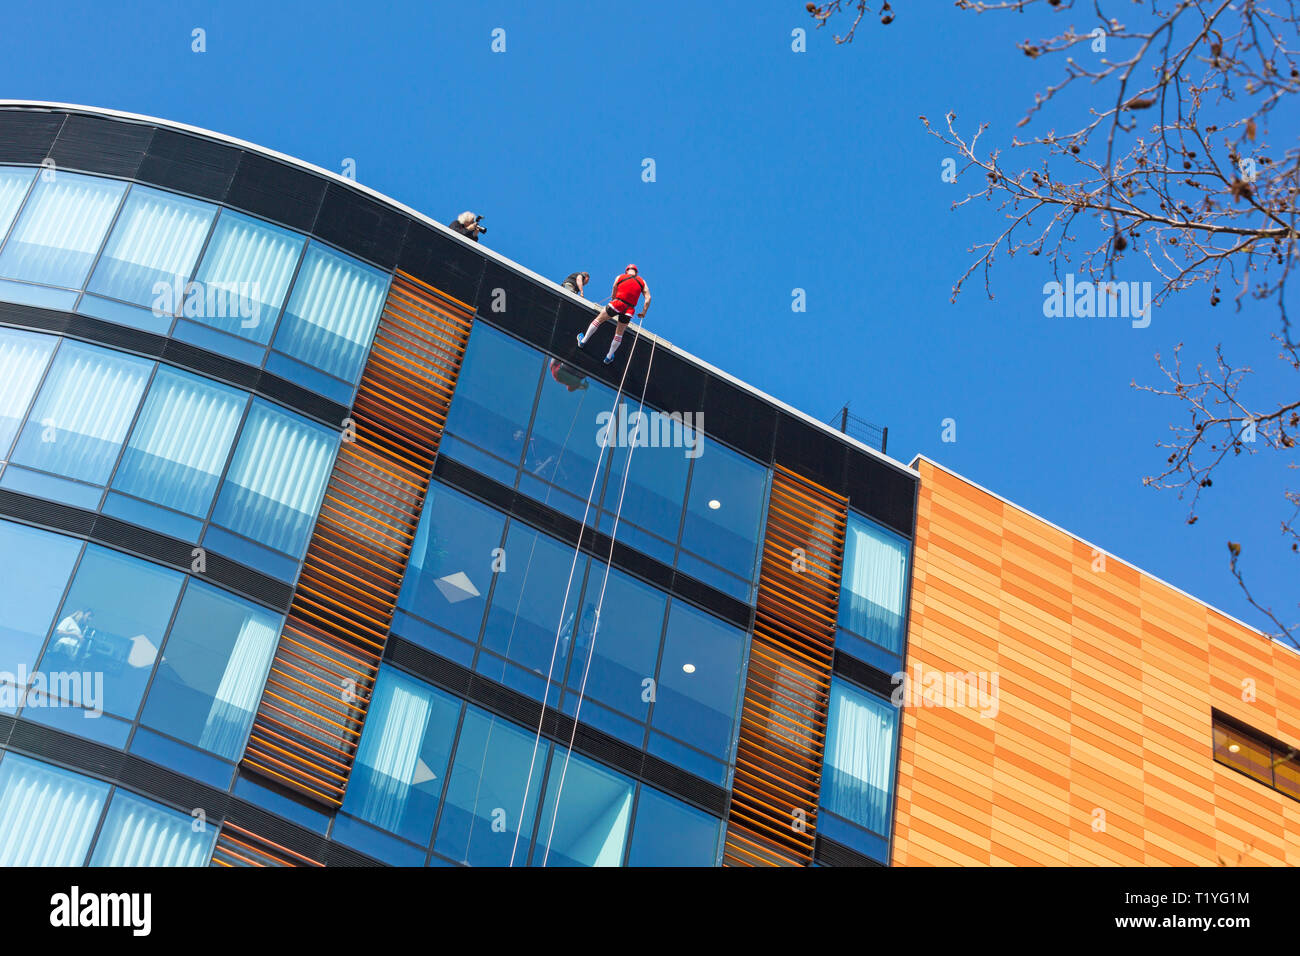 Bournemouth, Dorset, UK. 29th Mar, 2019. Staff working for telecommunications provider 4Com abseil down their new office building at One Lansdowne Plaza in Bournemouth which is 100ft high. They are raising funds for Hope Housing and Hope AOK Rucksack Appeal who provide support to homeless in Bournemouth. A lovely warm sunny day for the descent!  Man abseils down while friends and colleagues look out. Credit: Carolyn Jenkins/Alamy Live News - Stock Image